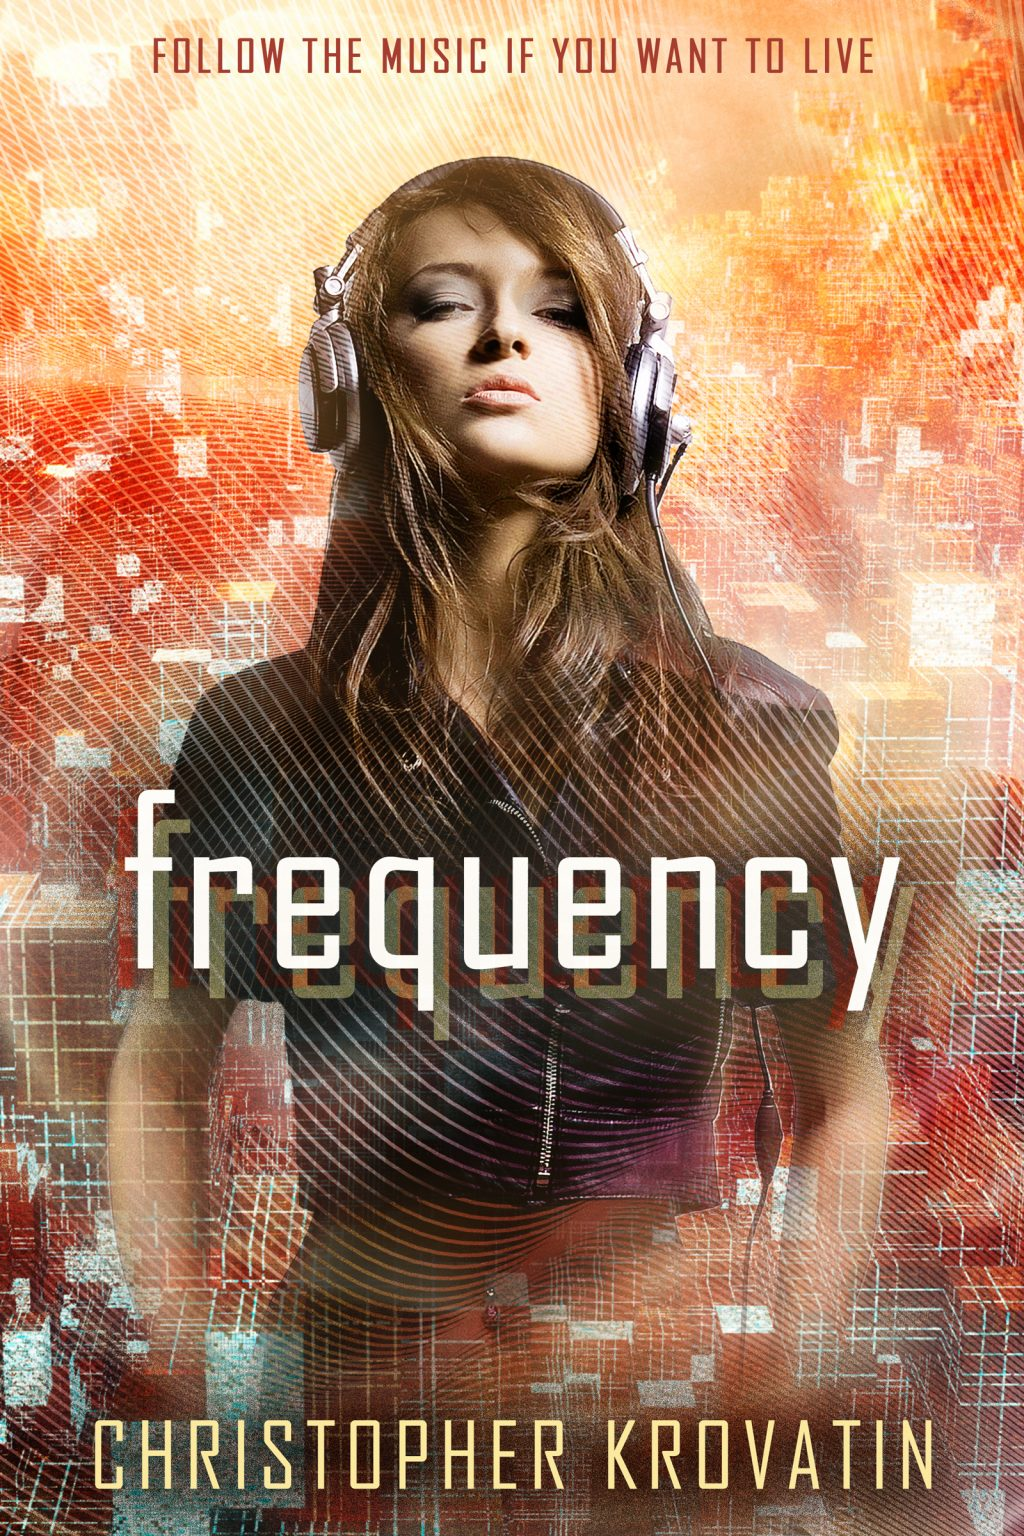 Frequency by Christopher Krovatin